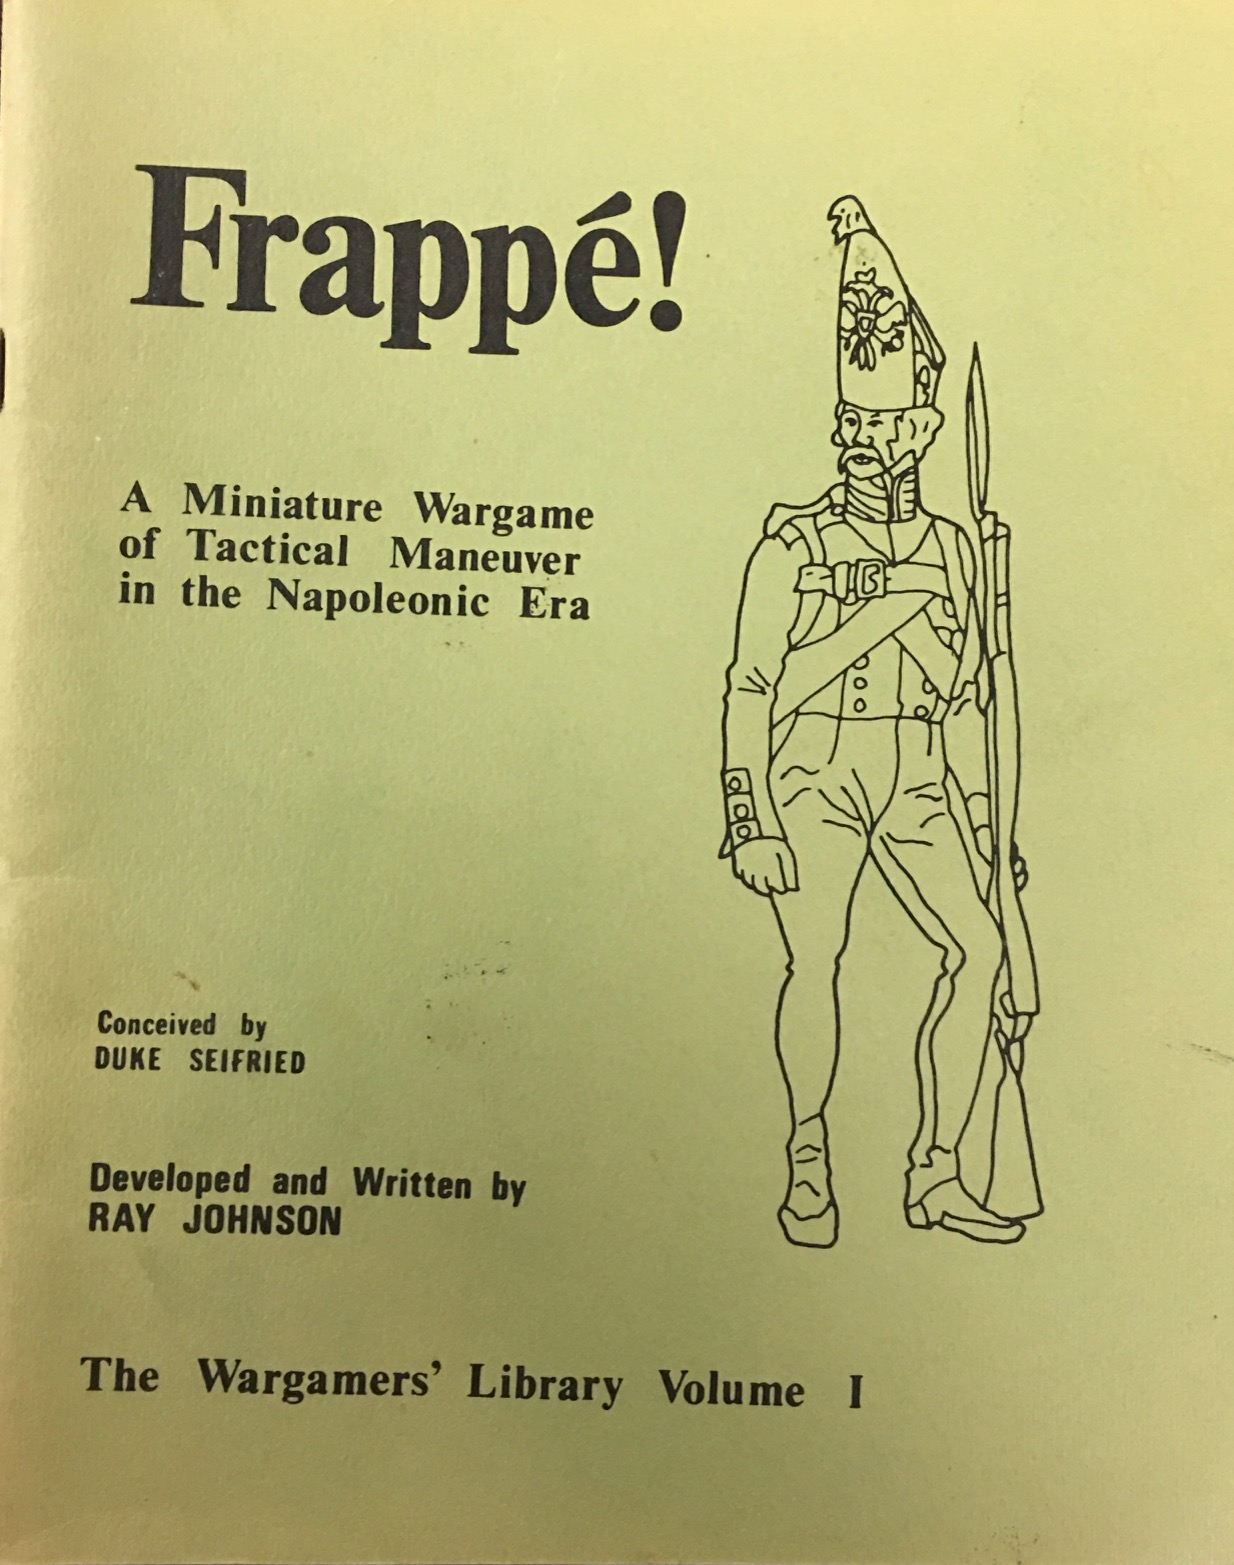 Image for Frappé - Miniature Wargame of Tactical Maneuver in the Napoleonic Era - Wargamer's Library Vol I